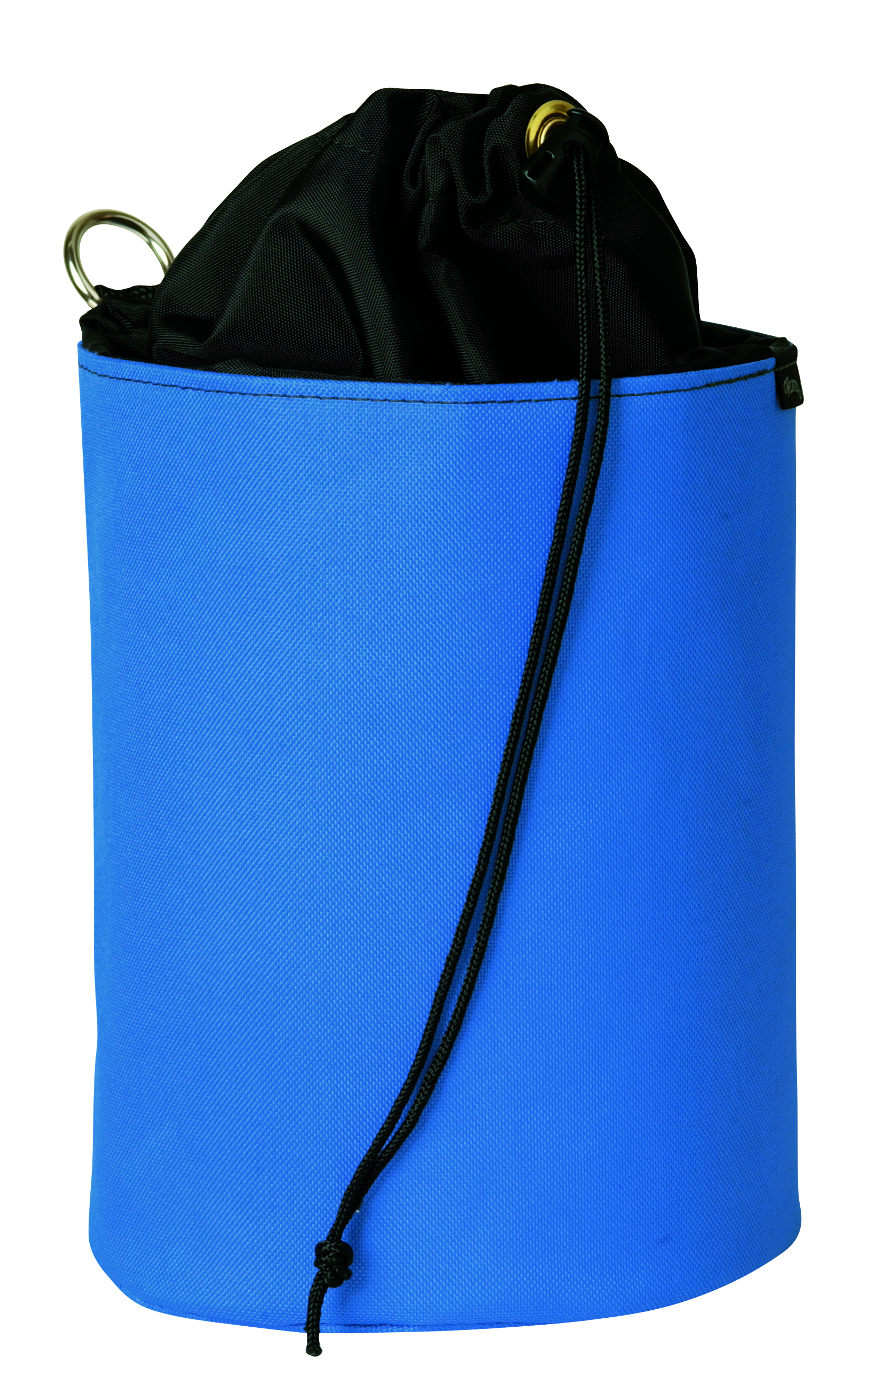 Throw Line Storage Bag — Medium WE-08-07142-BL